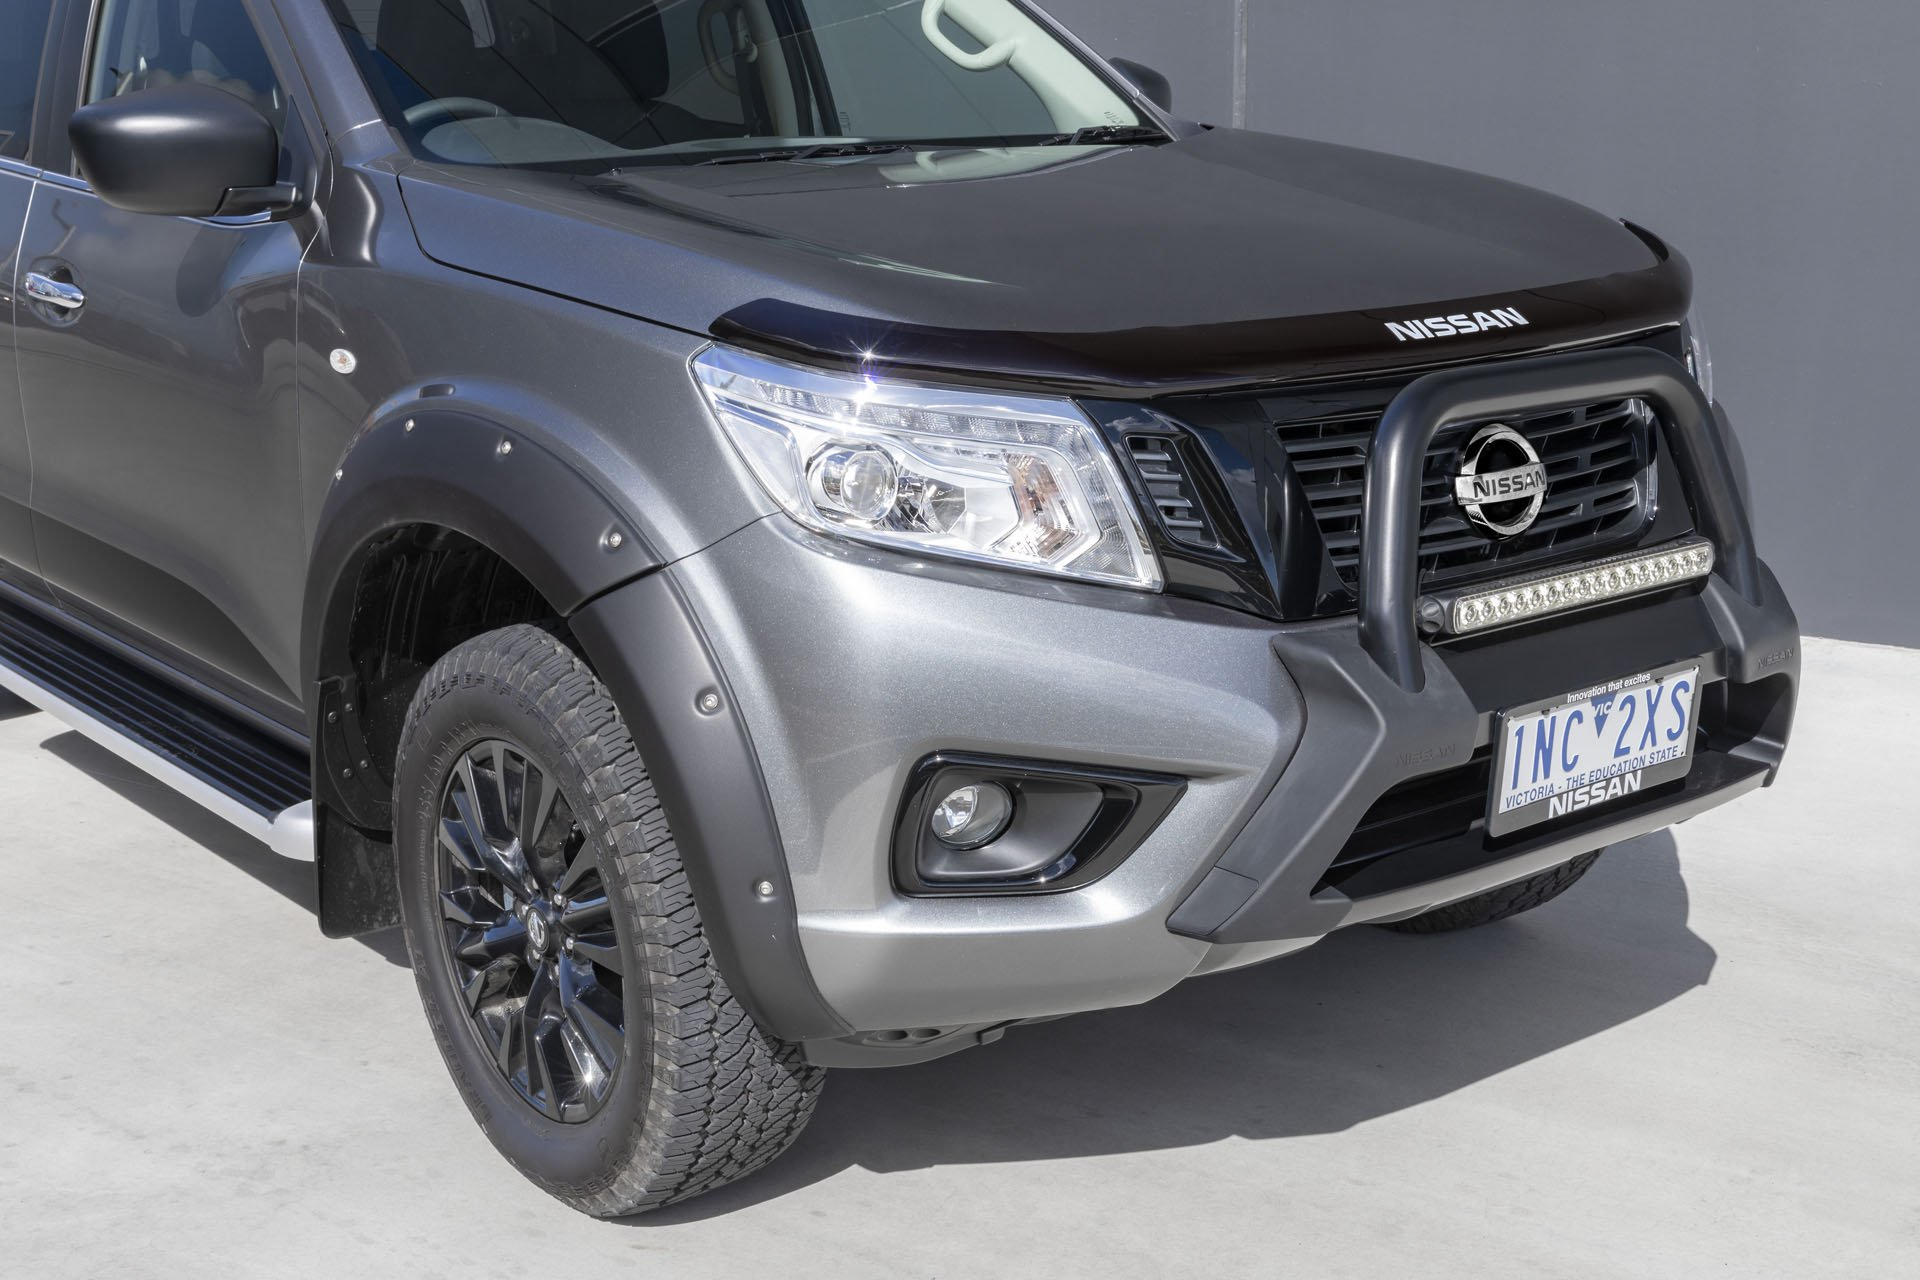 Nissan Frontier Is Almost Finished